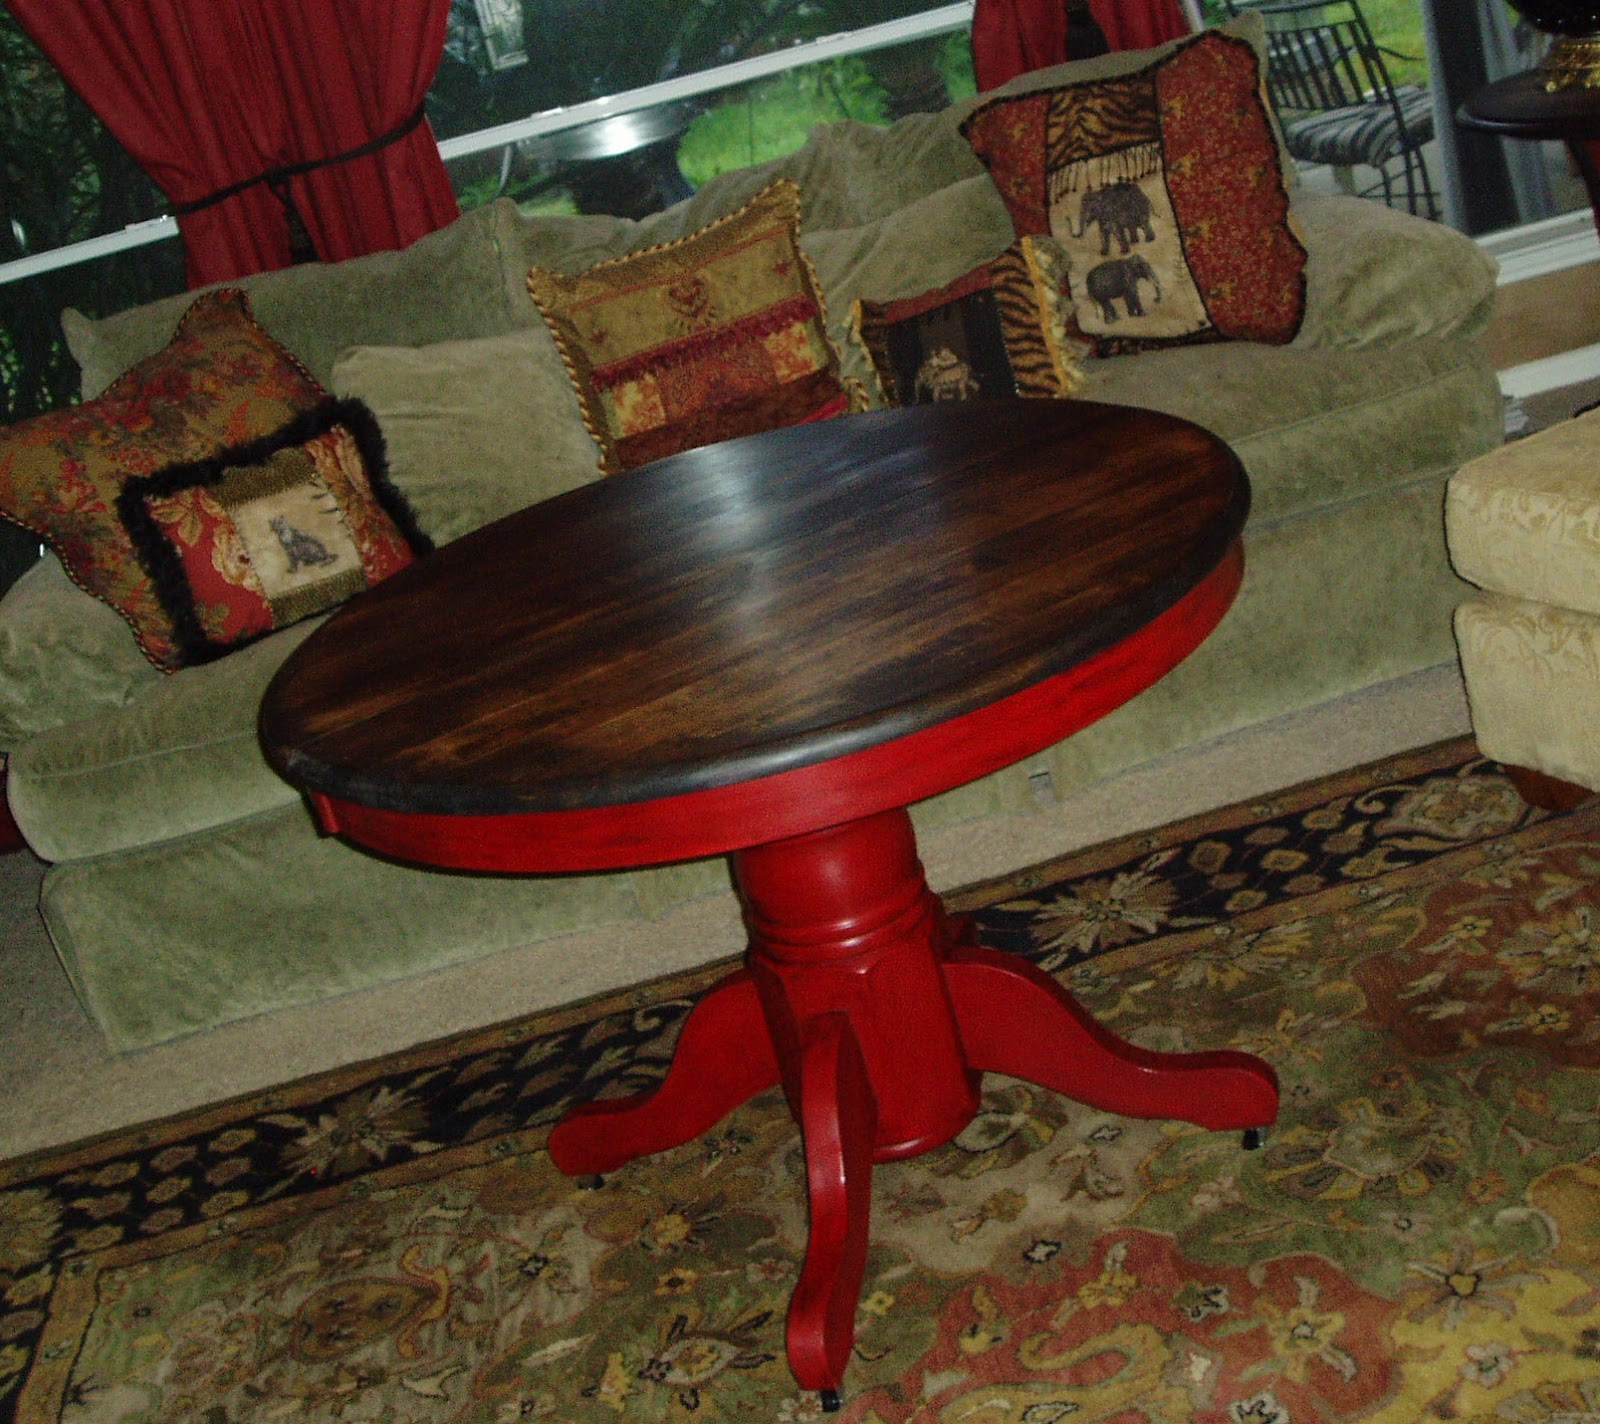 Burnish Red Pedestal Table Hand Rubbed French Wax Finish With Aged  Coloring. Itu0027s A Simple Table But The Colors Add A Casual Richness To It U0026  The Castors ...